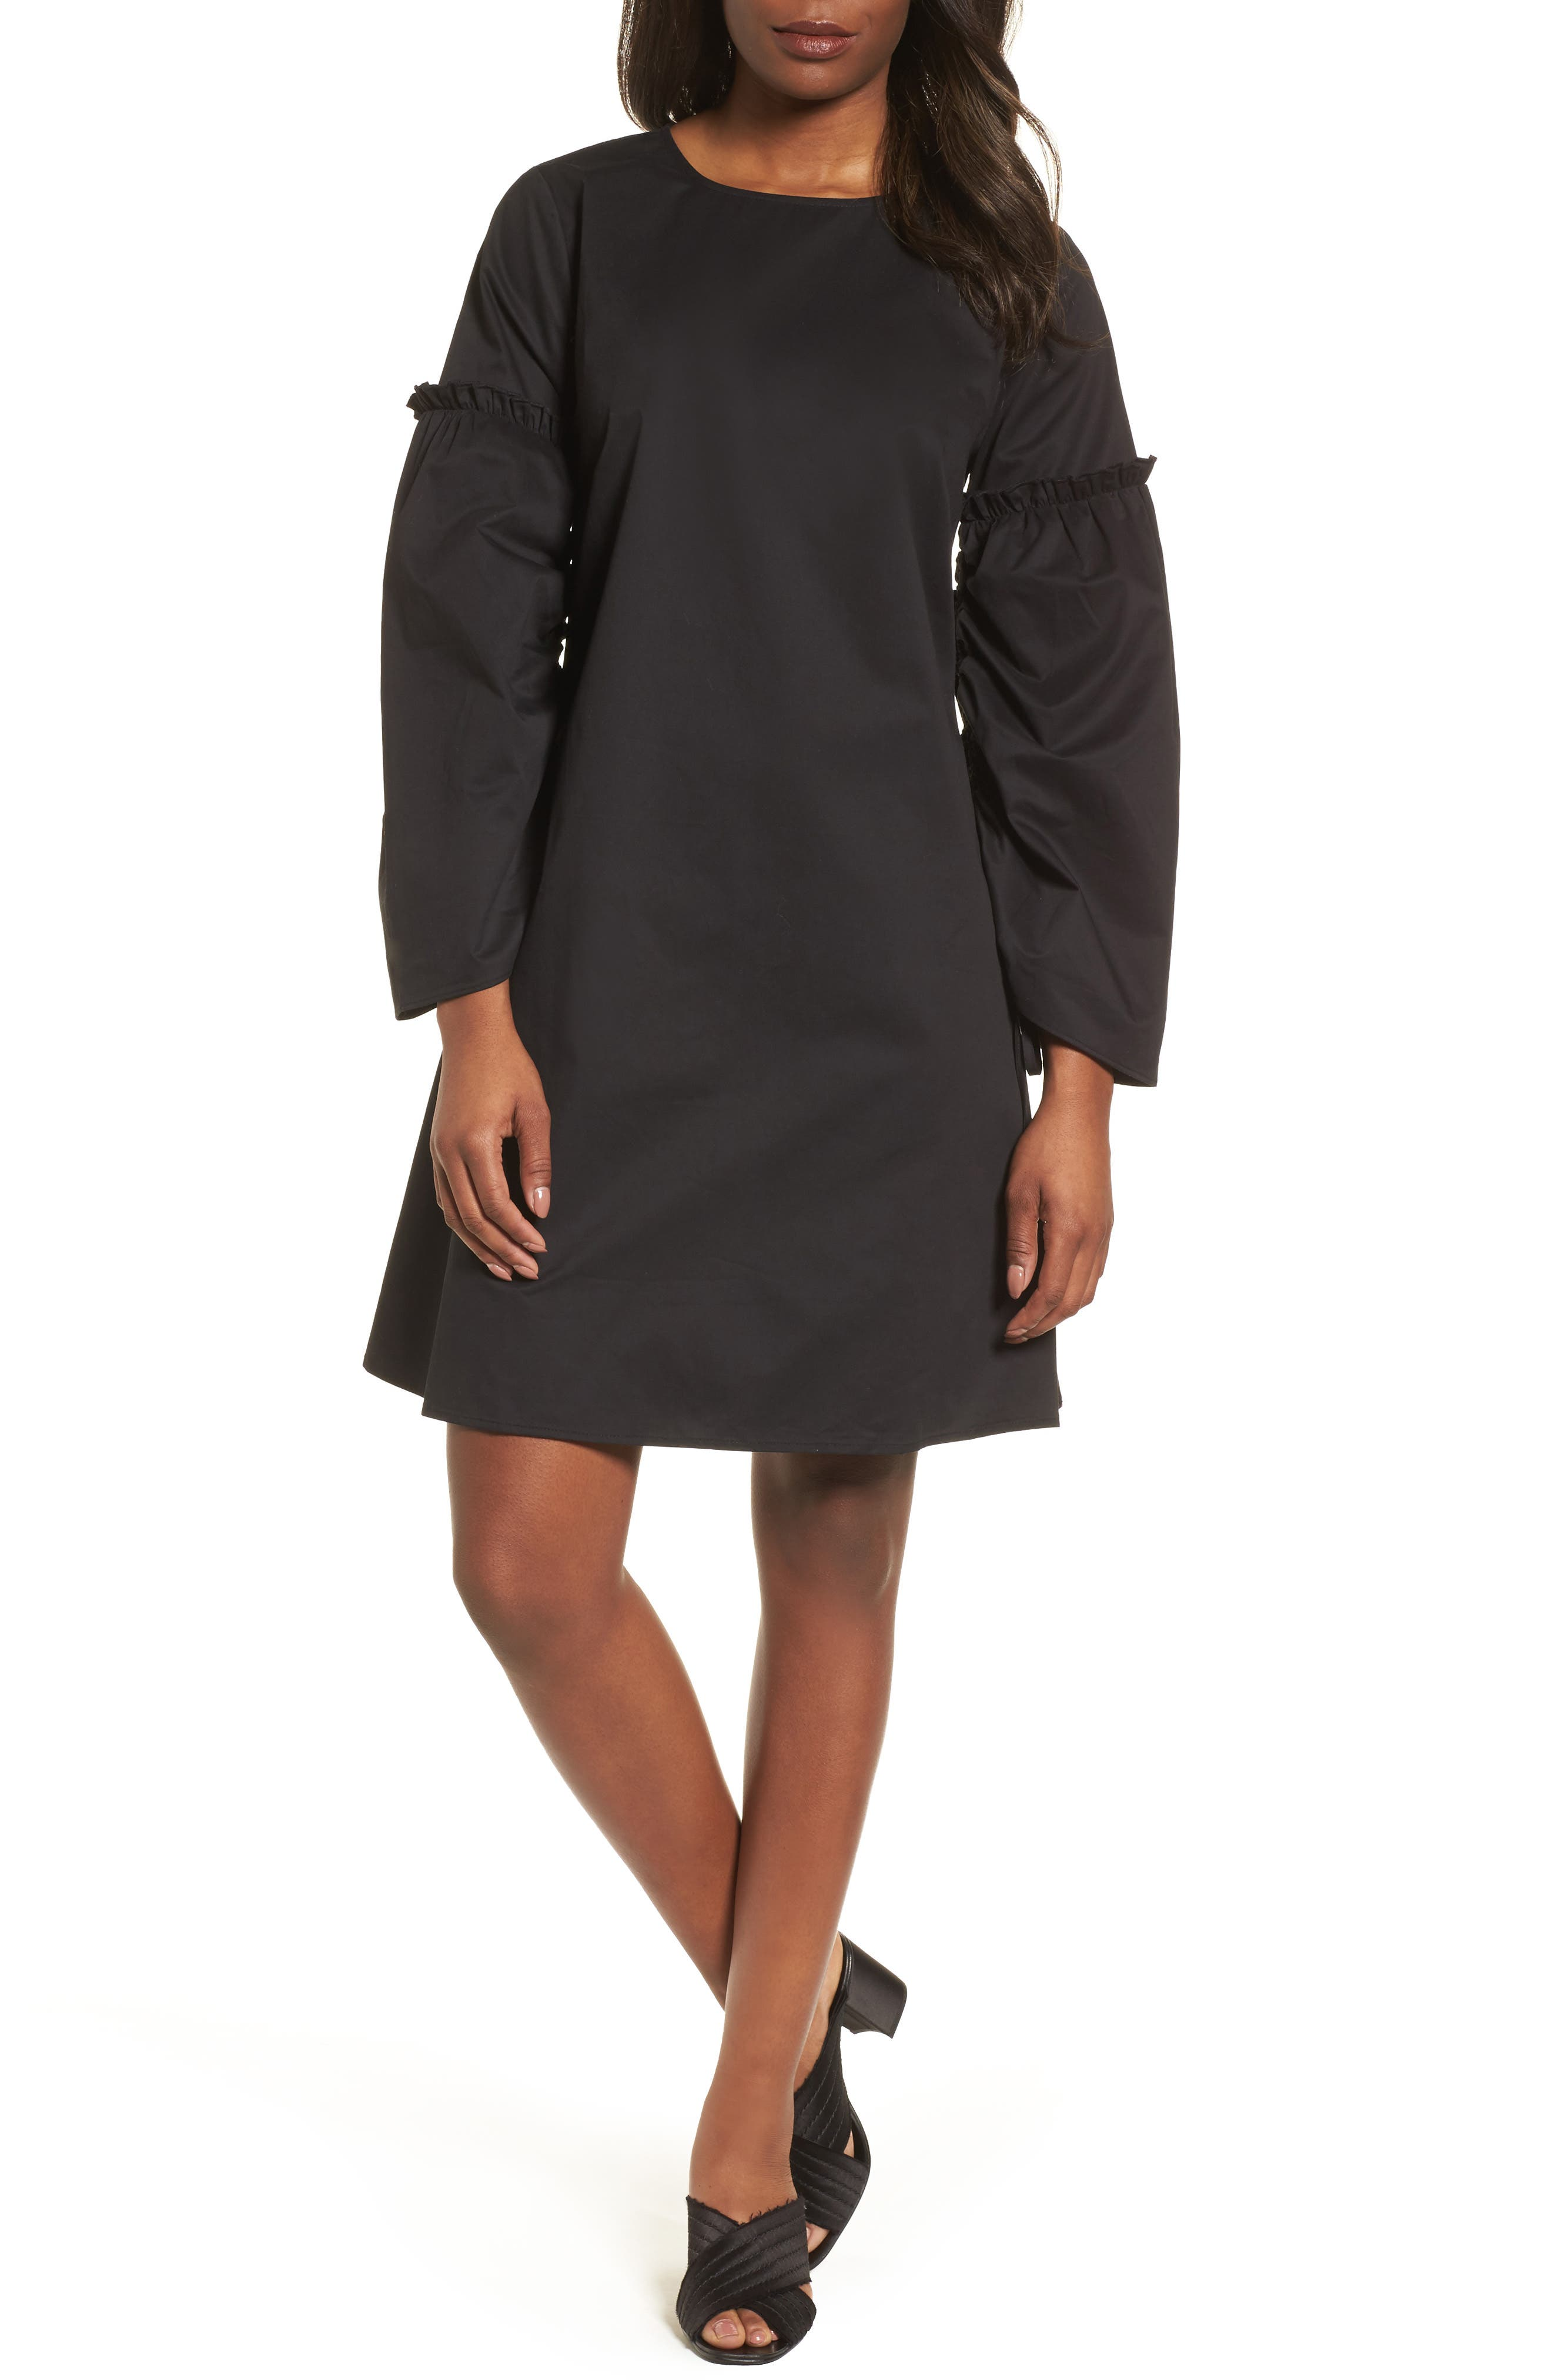 Parachute Sleeve Shift Dress,                         Main,                         color, 001